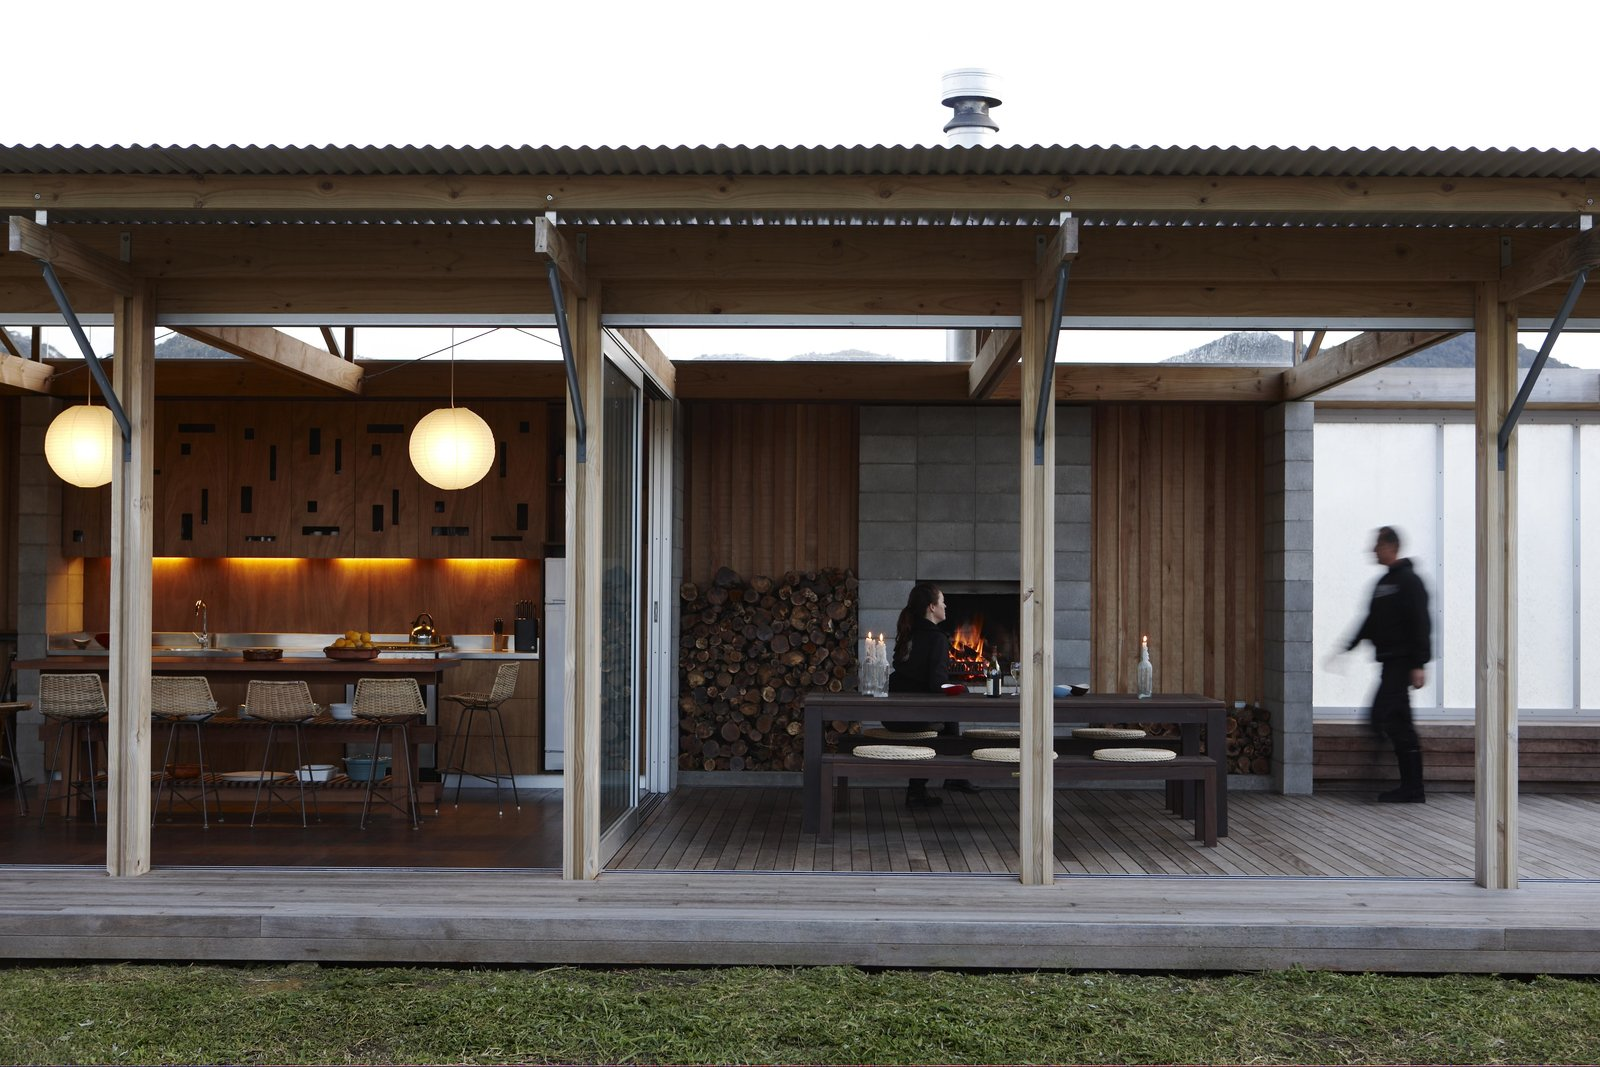 """The bach features a series of moveable wall-sized glass panels and screens that define light, shade, and shelter, and are designed to make the most of the limitations of the surrounding plot. The central kitchen-dining-living space can be opened completely, or shut up tight in winter.  """"One of the builders referred to it as the 'inside-out house',"""" says Herbst. """"I thought that was quite fitting."""" Off-the-Grid Island House in New Zealand Connects with the Outdoors - Photo 4 of 7"""